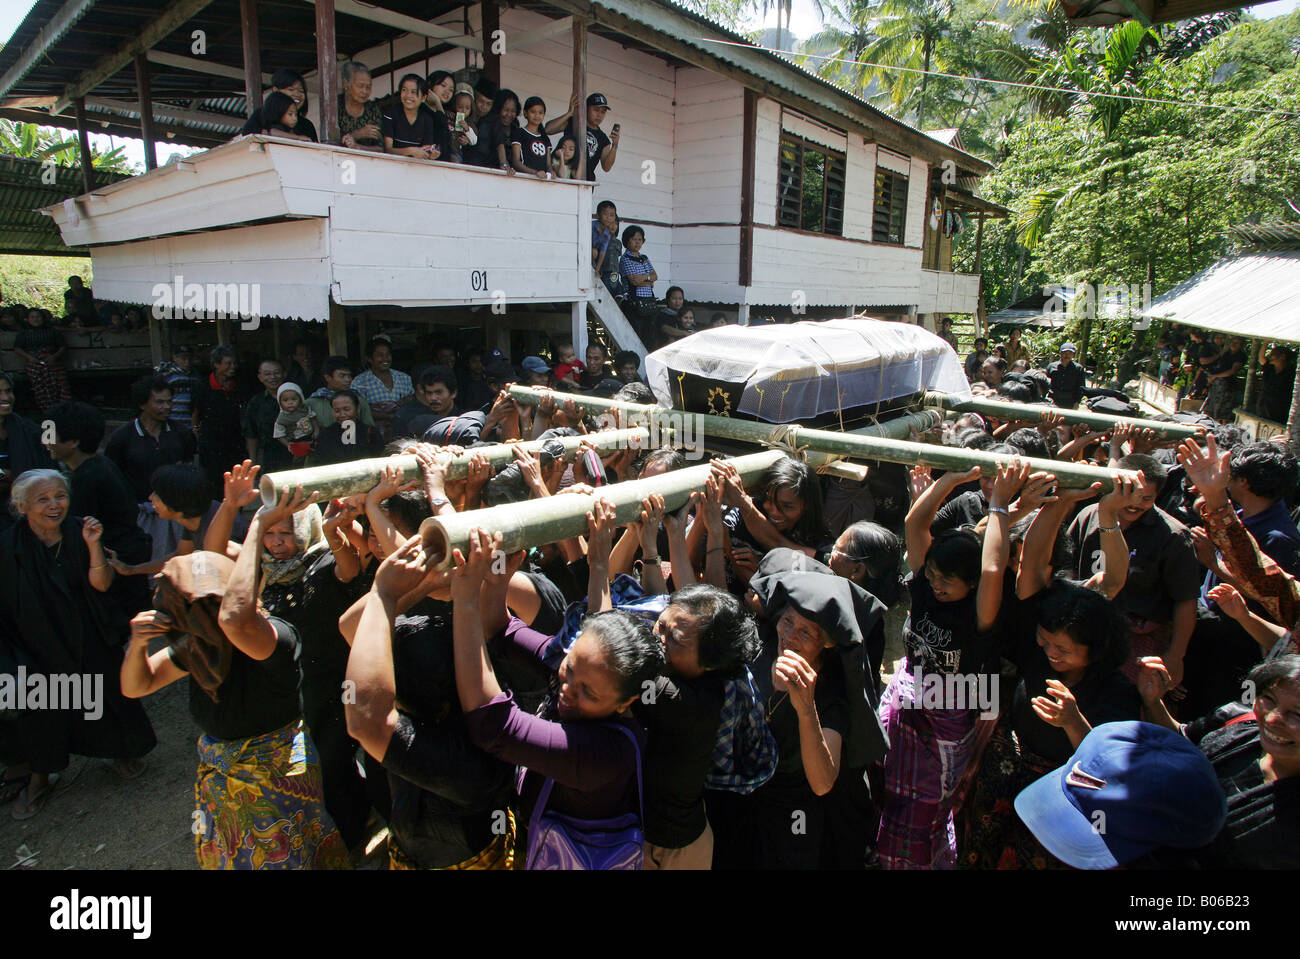 Indonesia Sulawesi Tana Toraja: traditional funeral, the body is carried in a procession to the grave - Stock Image